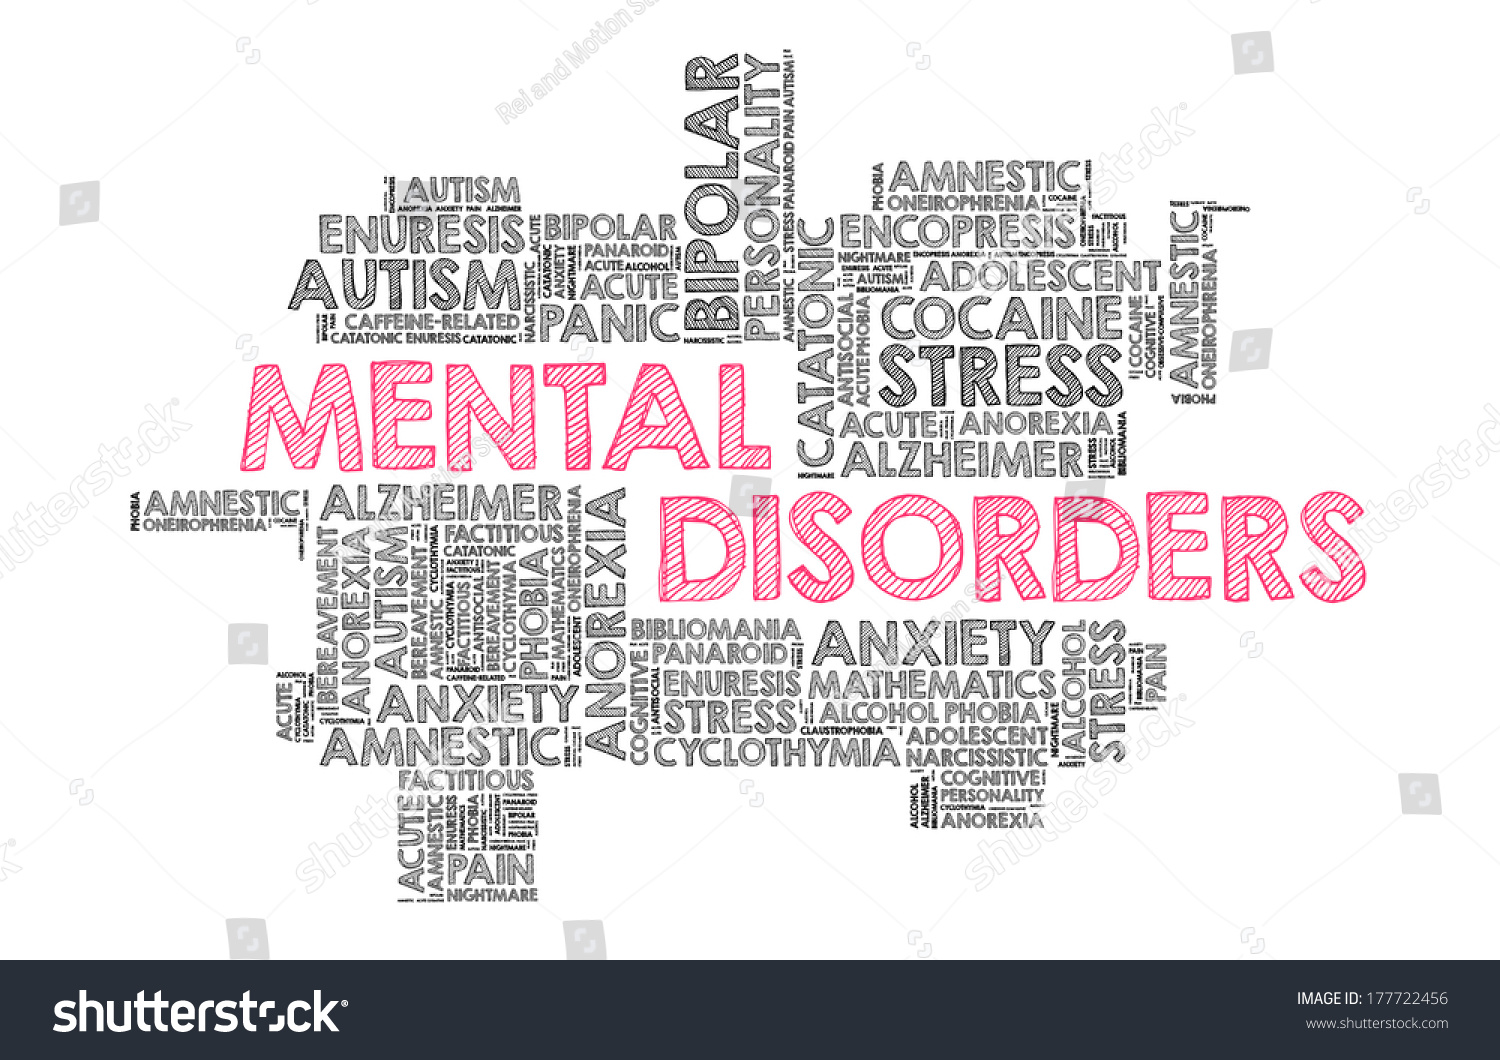 list mental disorders word cloud stock illustration 177722456